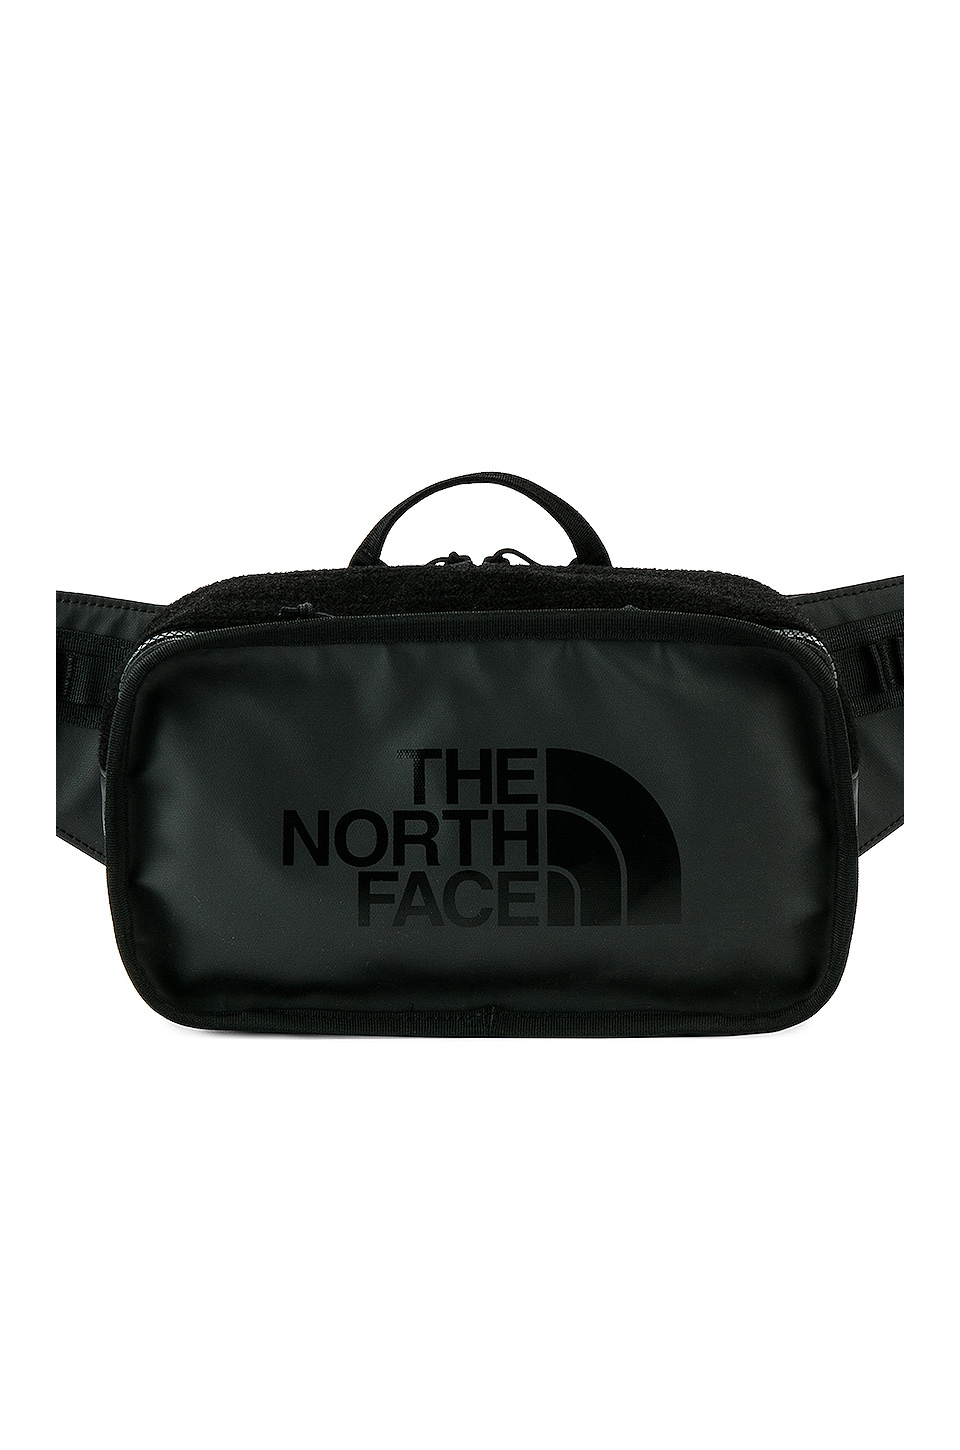 The North Face GRANDE BOX FANNY